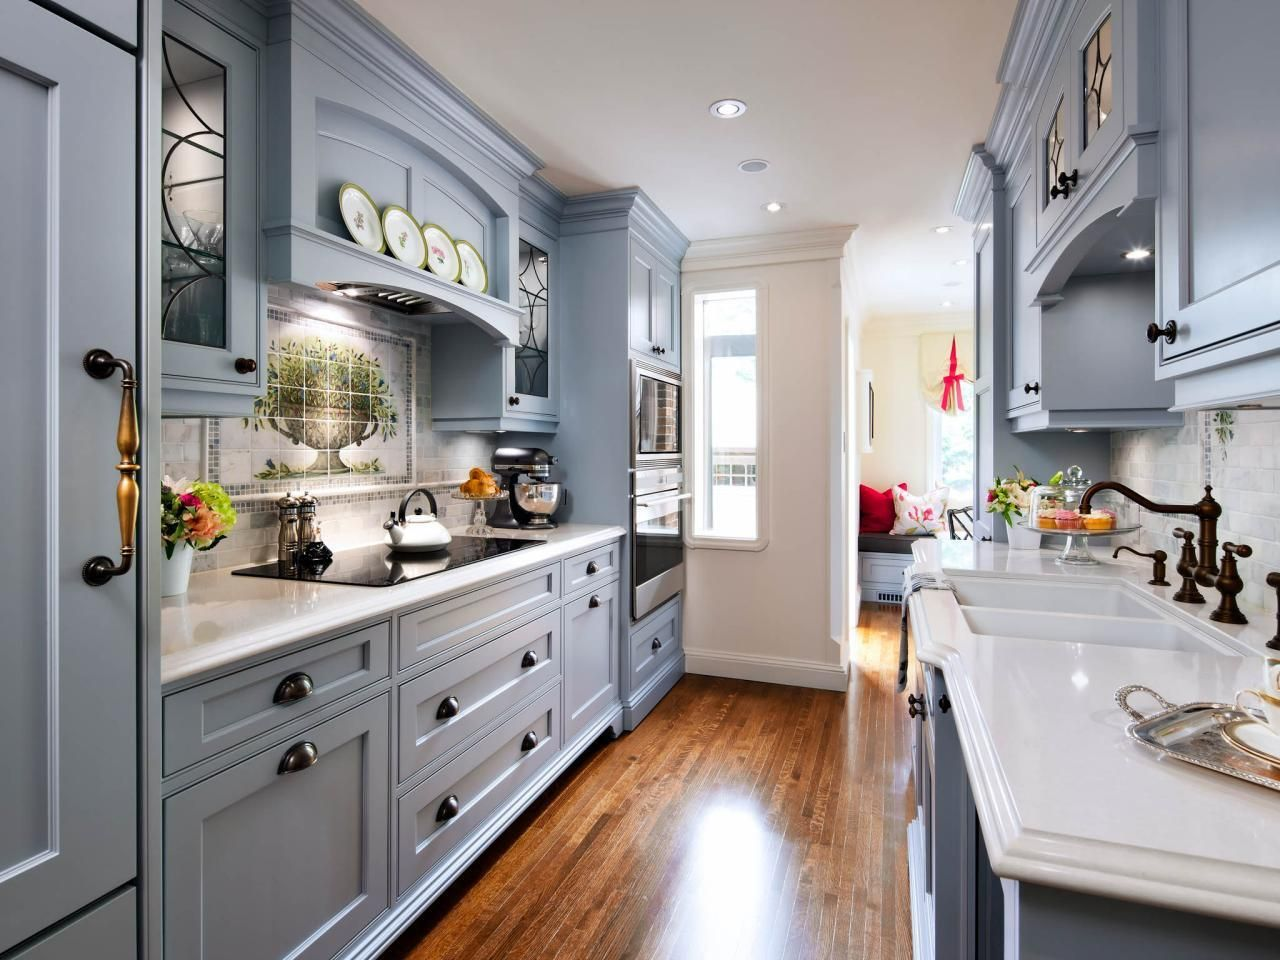 Grey Galley Kitchen Design  Kitchen  Pinterest  Galley Kitchen Gorgeous Gallery Kitchen Design Decorating Design